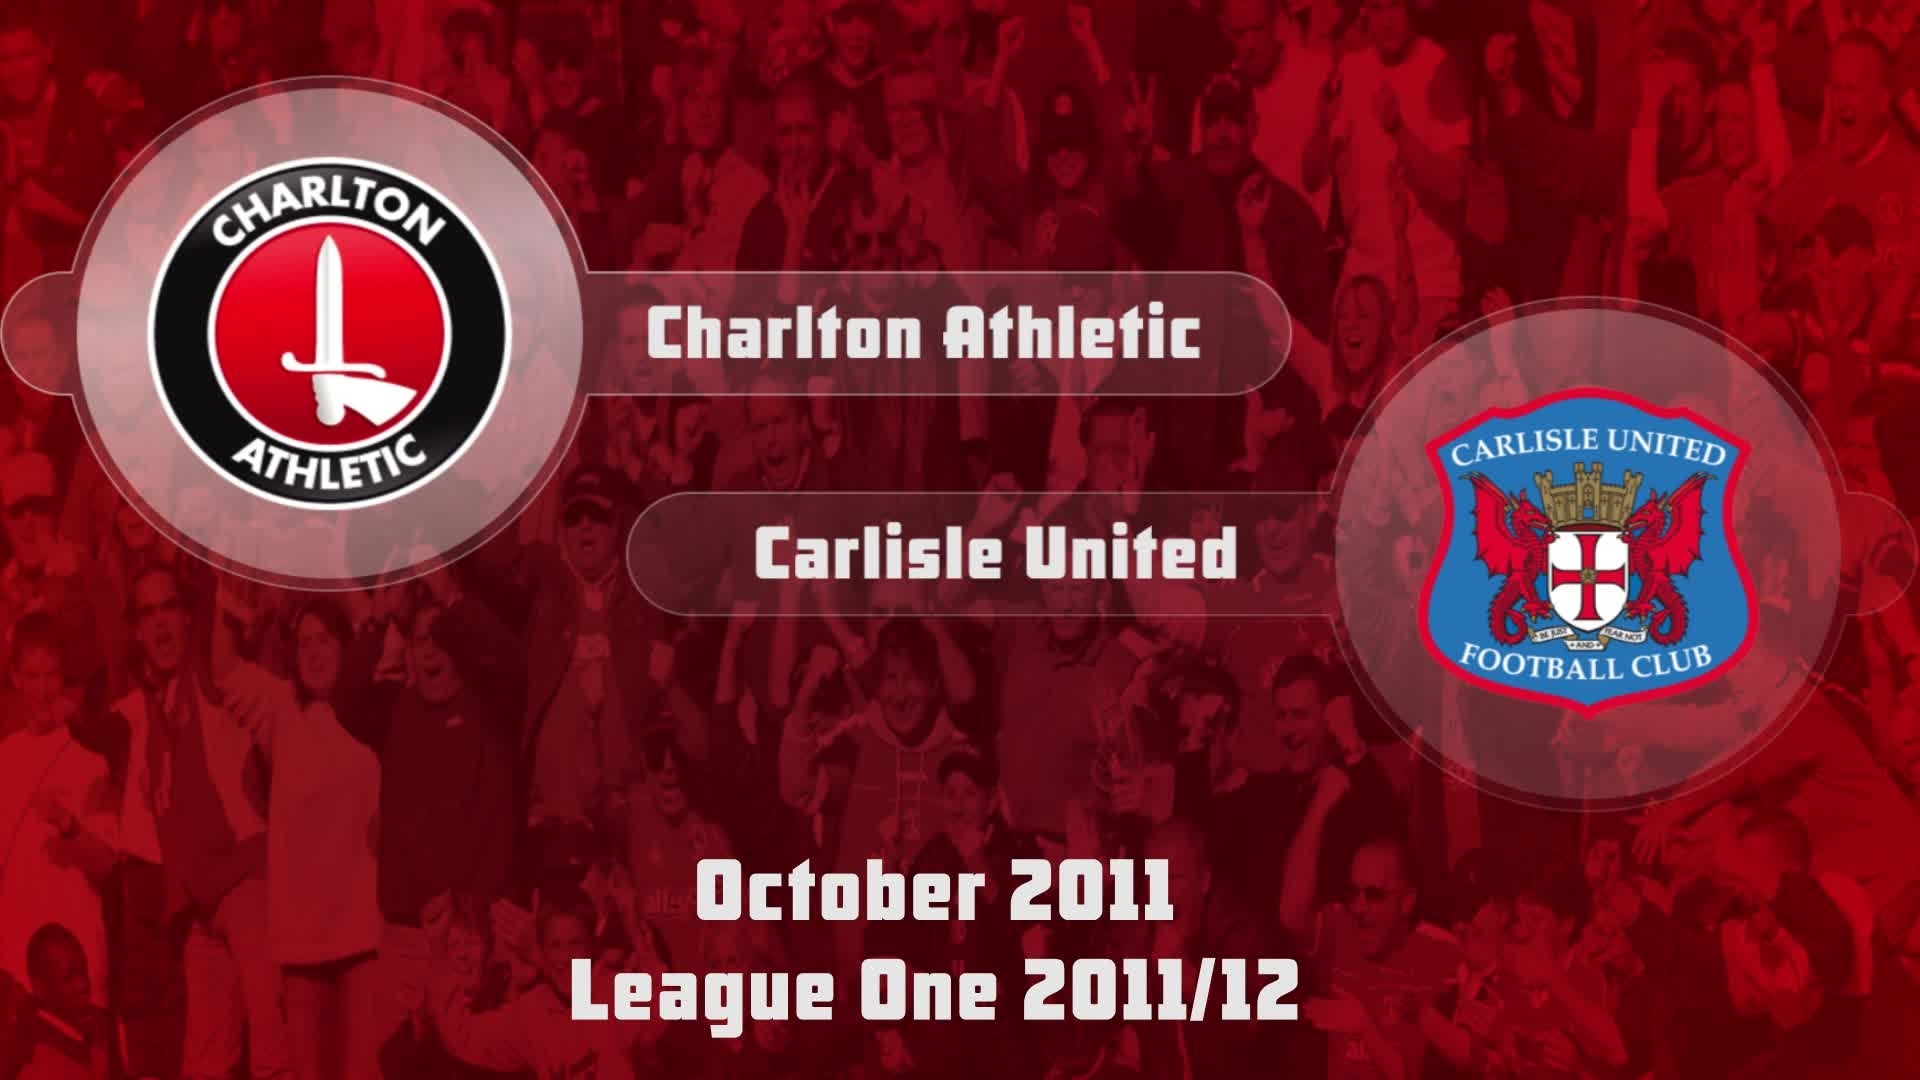 17 HIGHLIGHTS | Charlton 4 Carlisle 0 (Oct 2011)